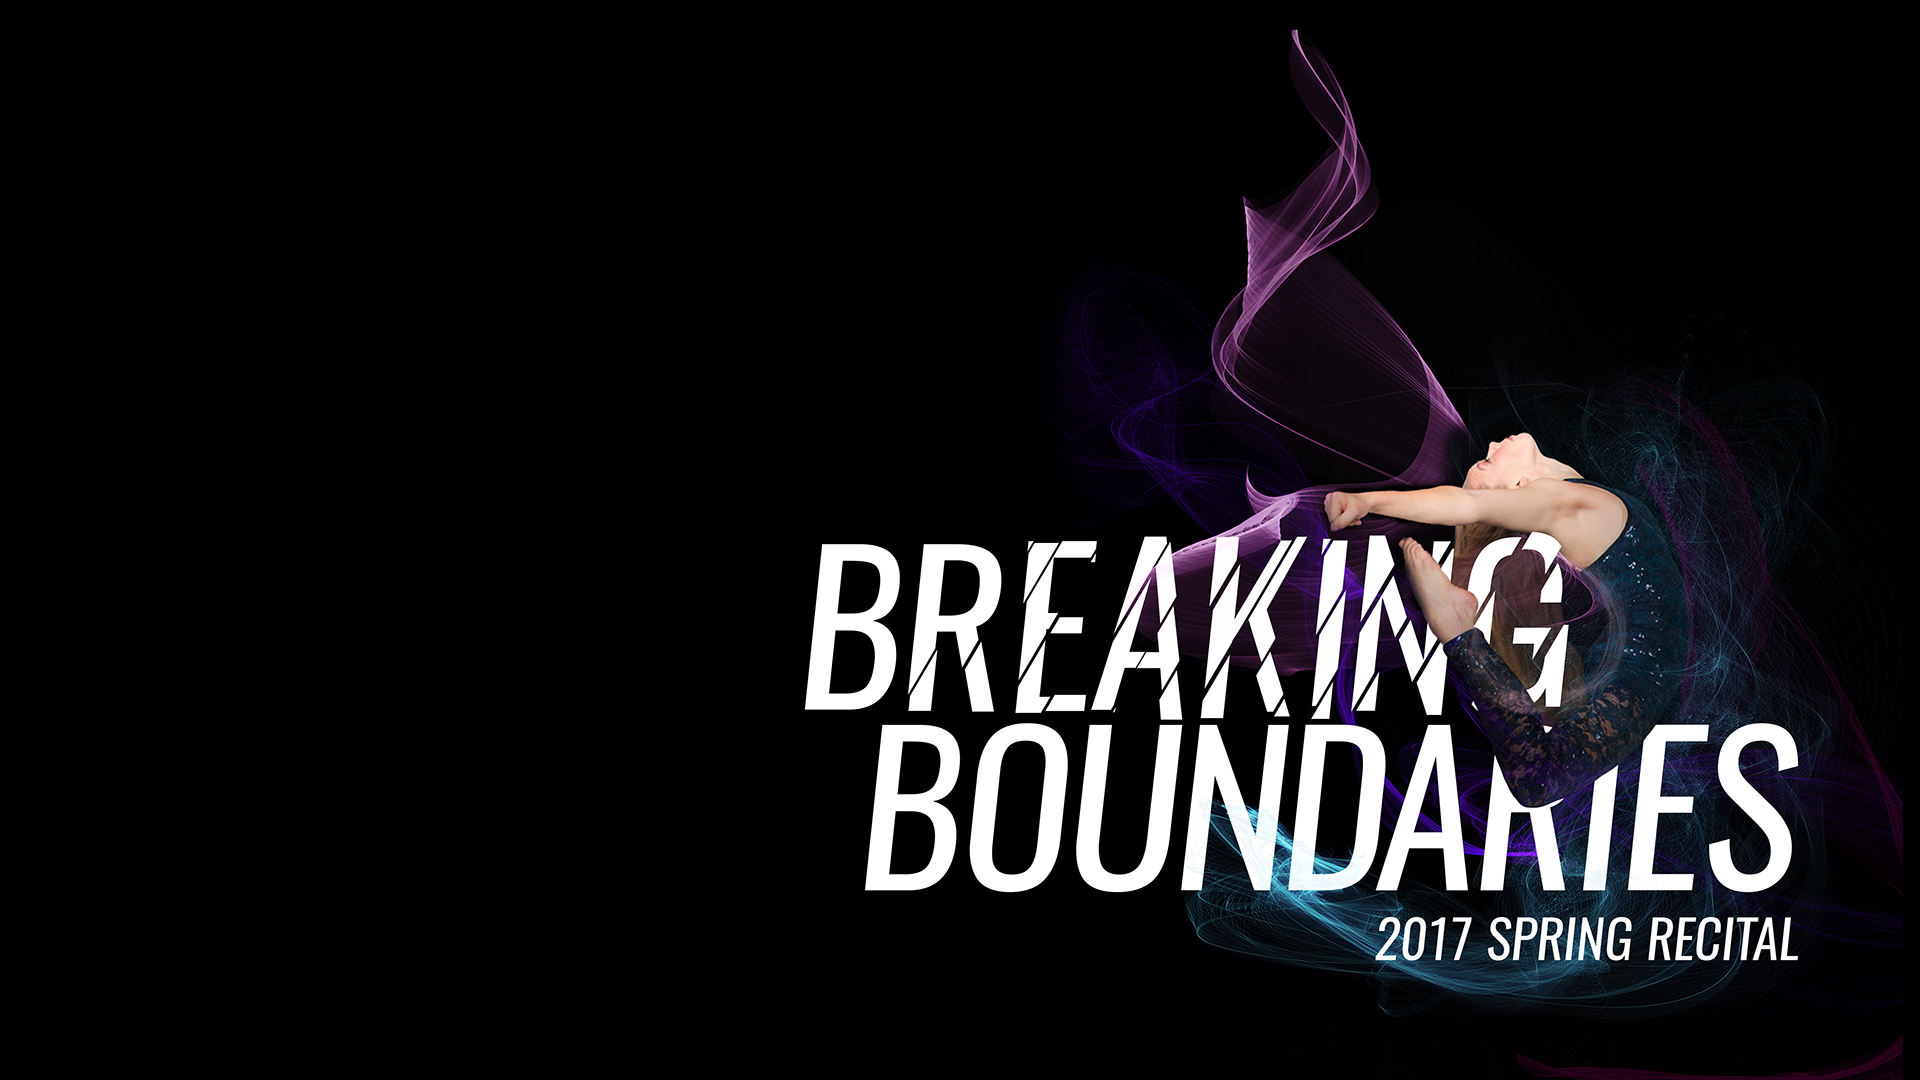 Dancer jumping in the air with colored wisps in the background around the words Breaking Boundaries on a black background